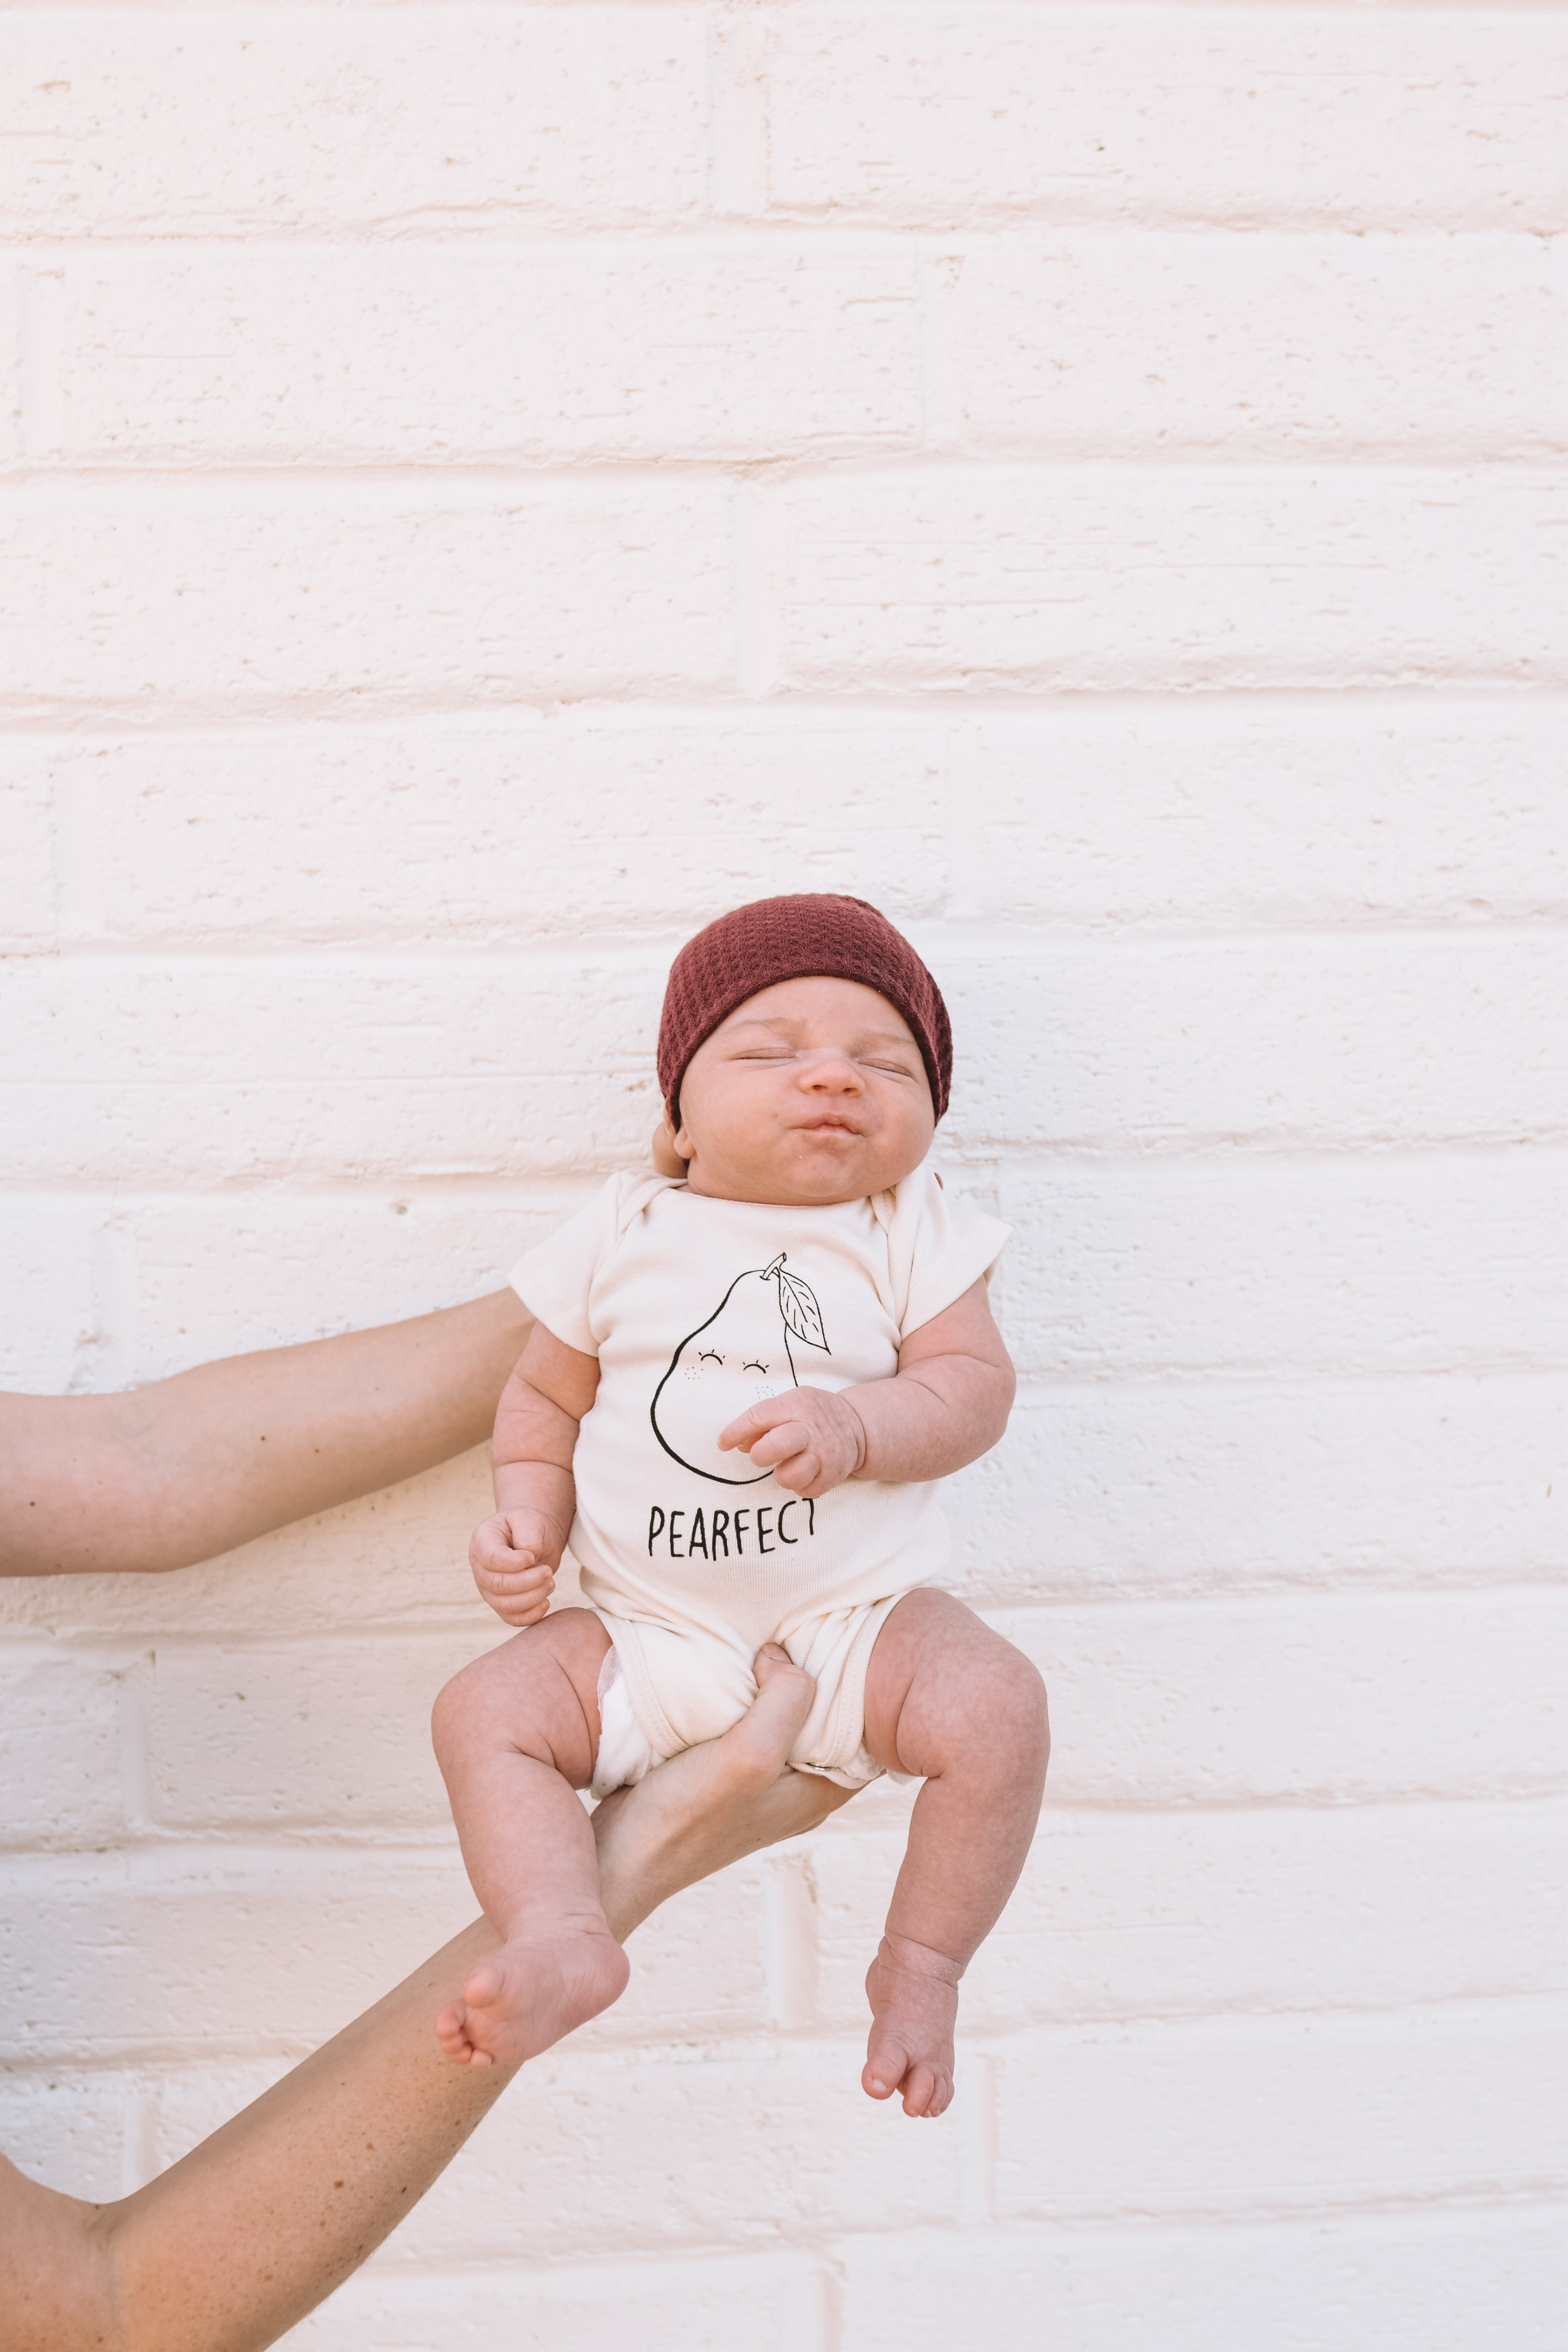 One Month Old Milestone Photos - The Overwhelmed Mommy Blogger